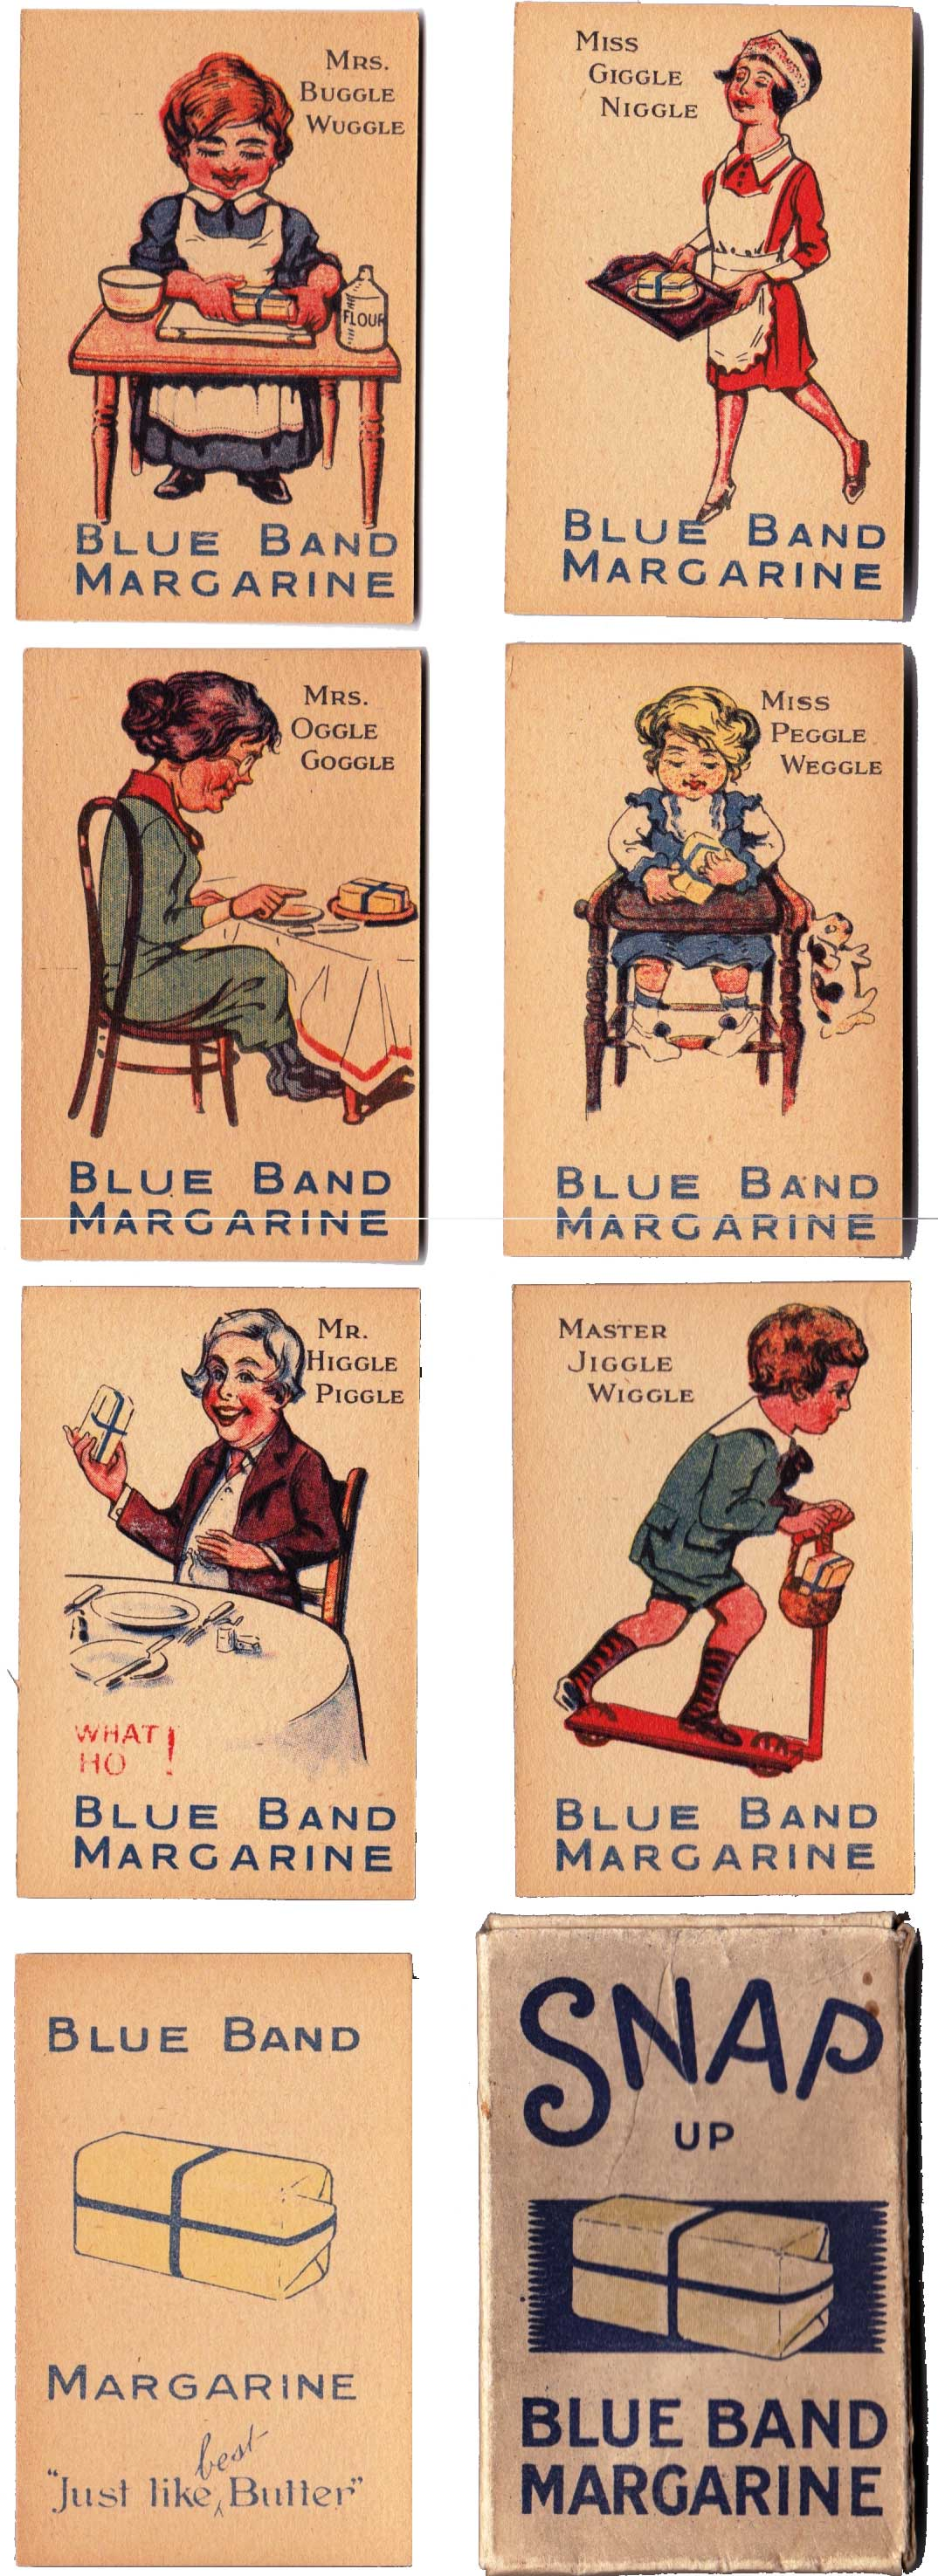 Blue Brand Snap Up published by Van den Berghs probably late 1920s